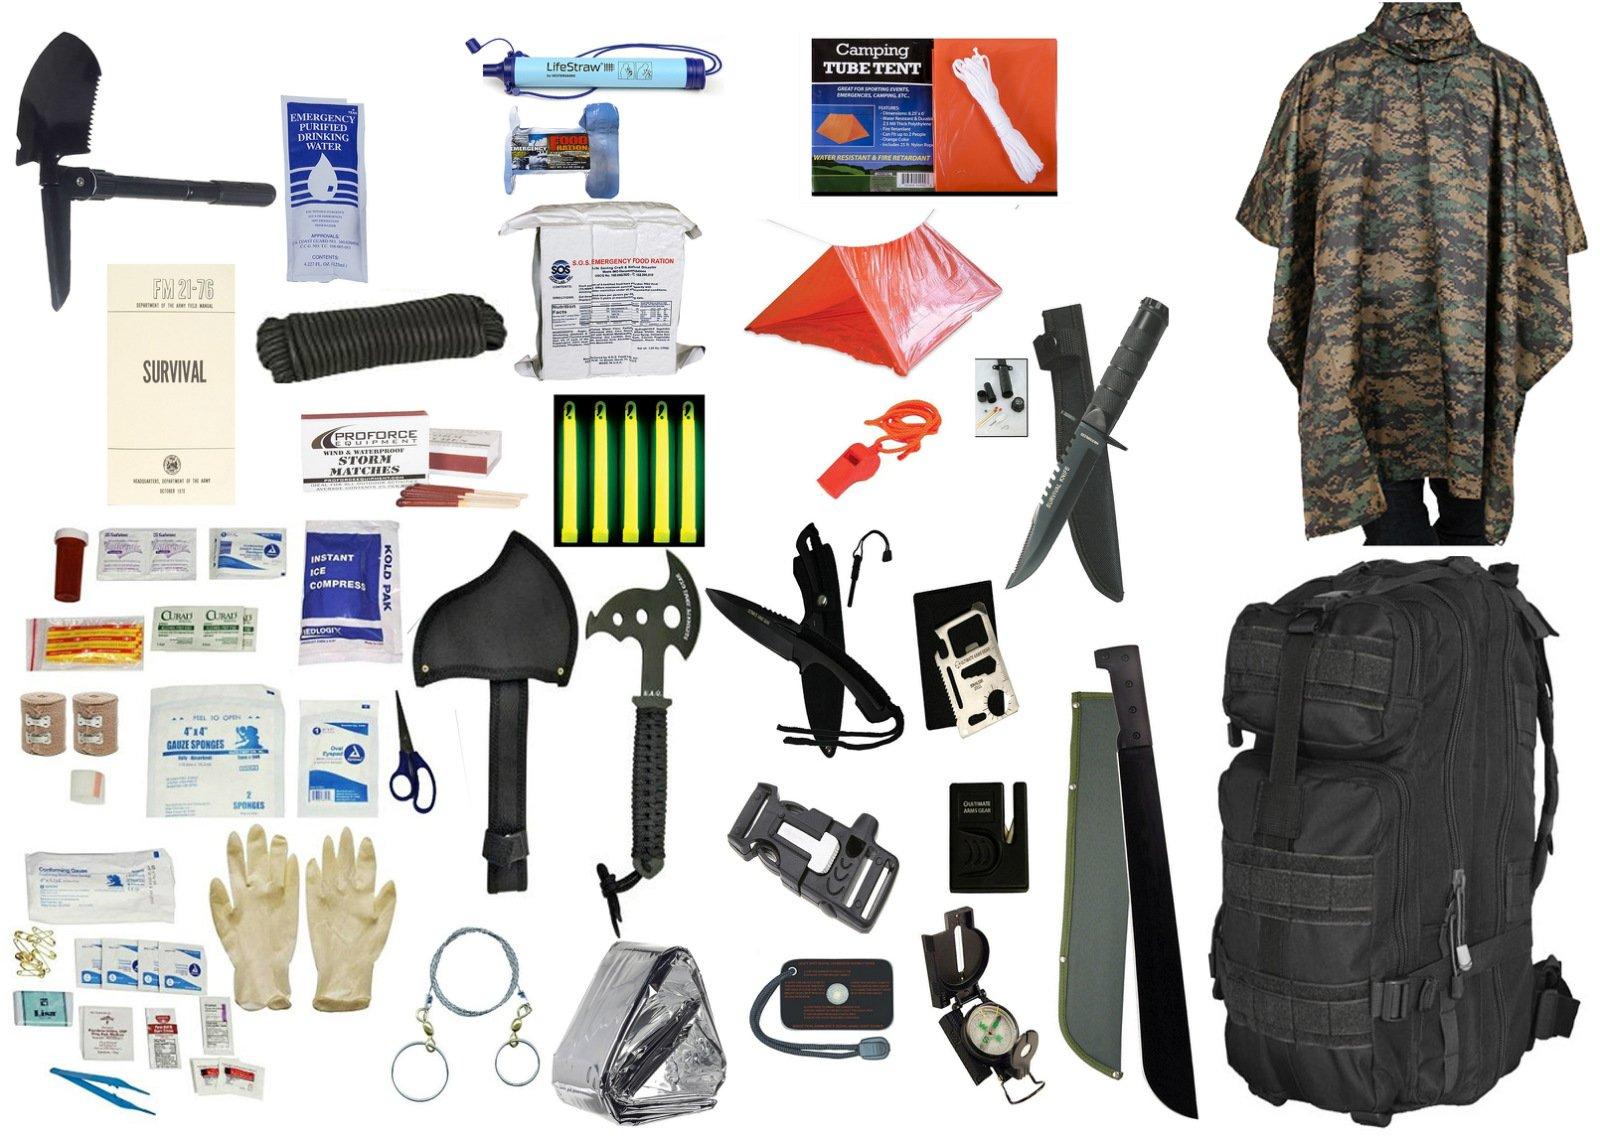 2 Person Supply 3 Day Emergency Bug Out S.O.S. Food Rations, Drinking Water, LifeStraw Personal Filter, First Aid Kit, Tent, Blanket, Backpack, Woodland Poncho + Essential 21 Piece Survival Gear Set